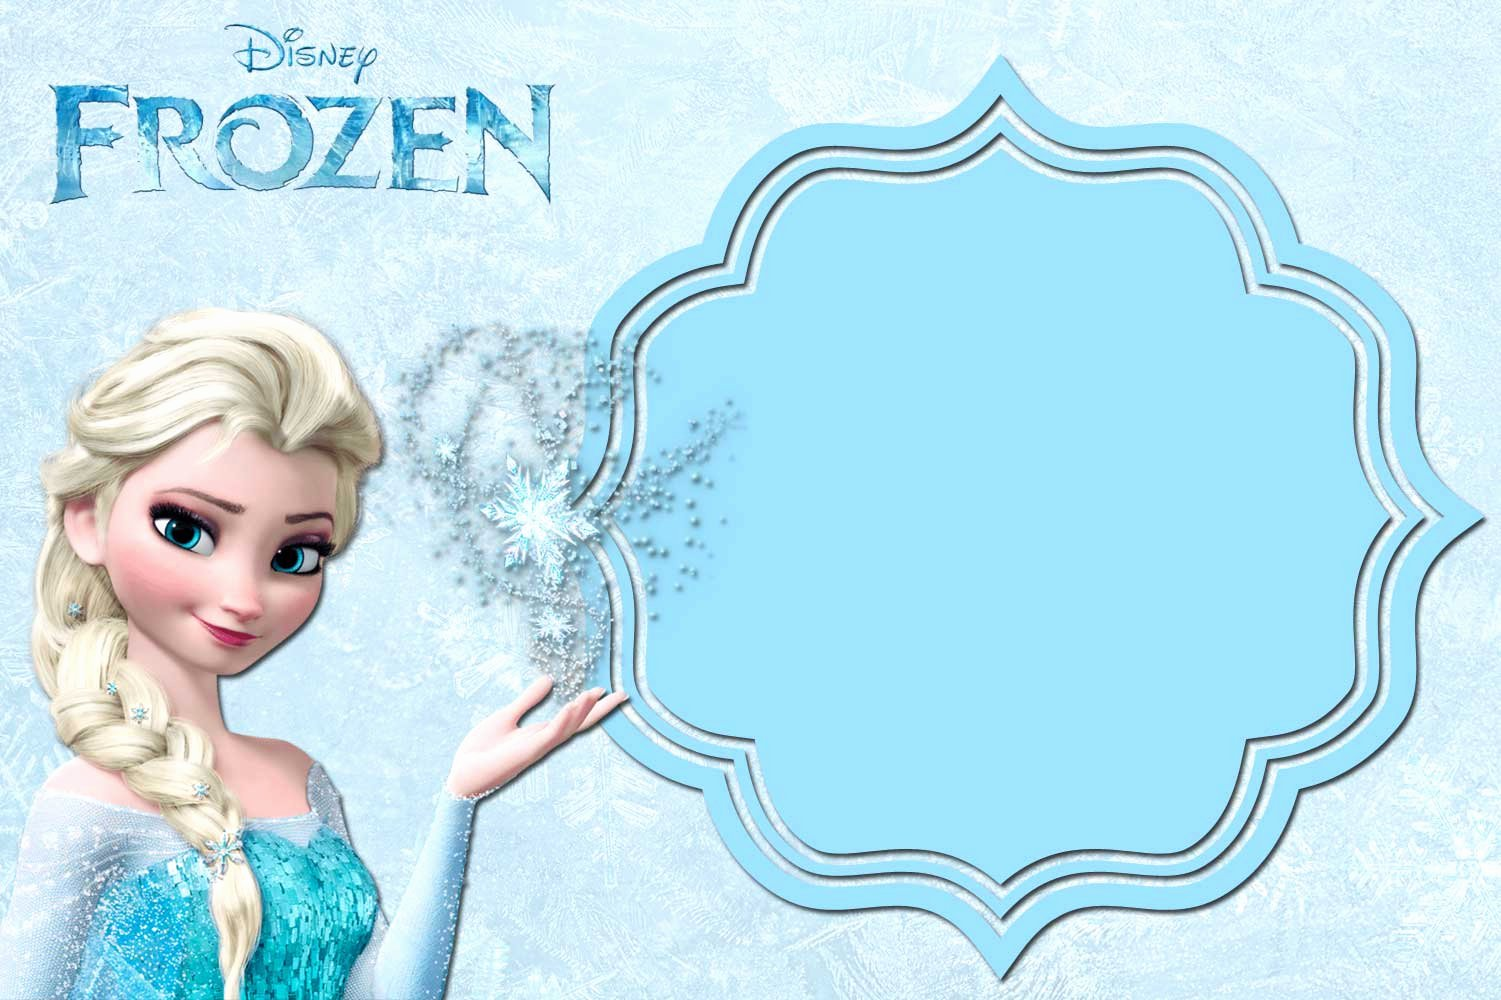 Frozen Party Invitation Template New Free Printable Frozen Anna and Elsa Invitation Templates